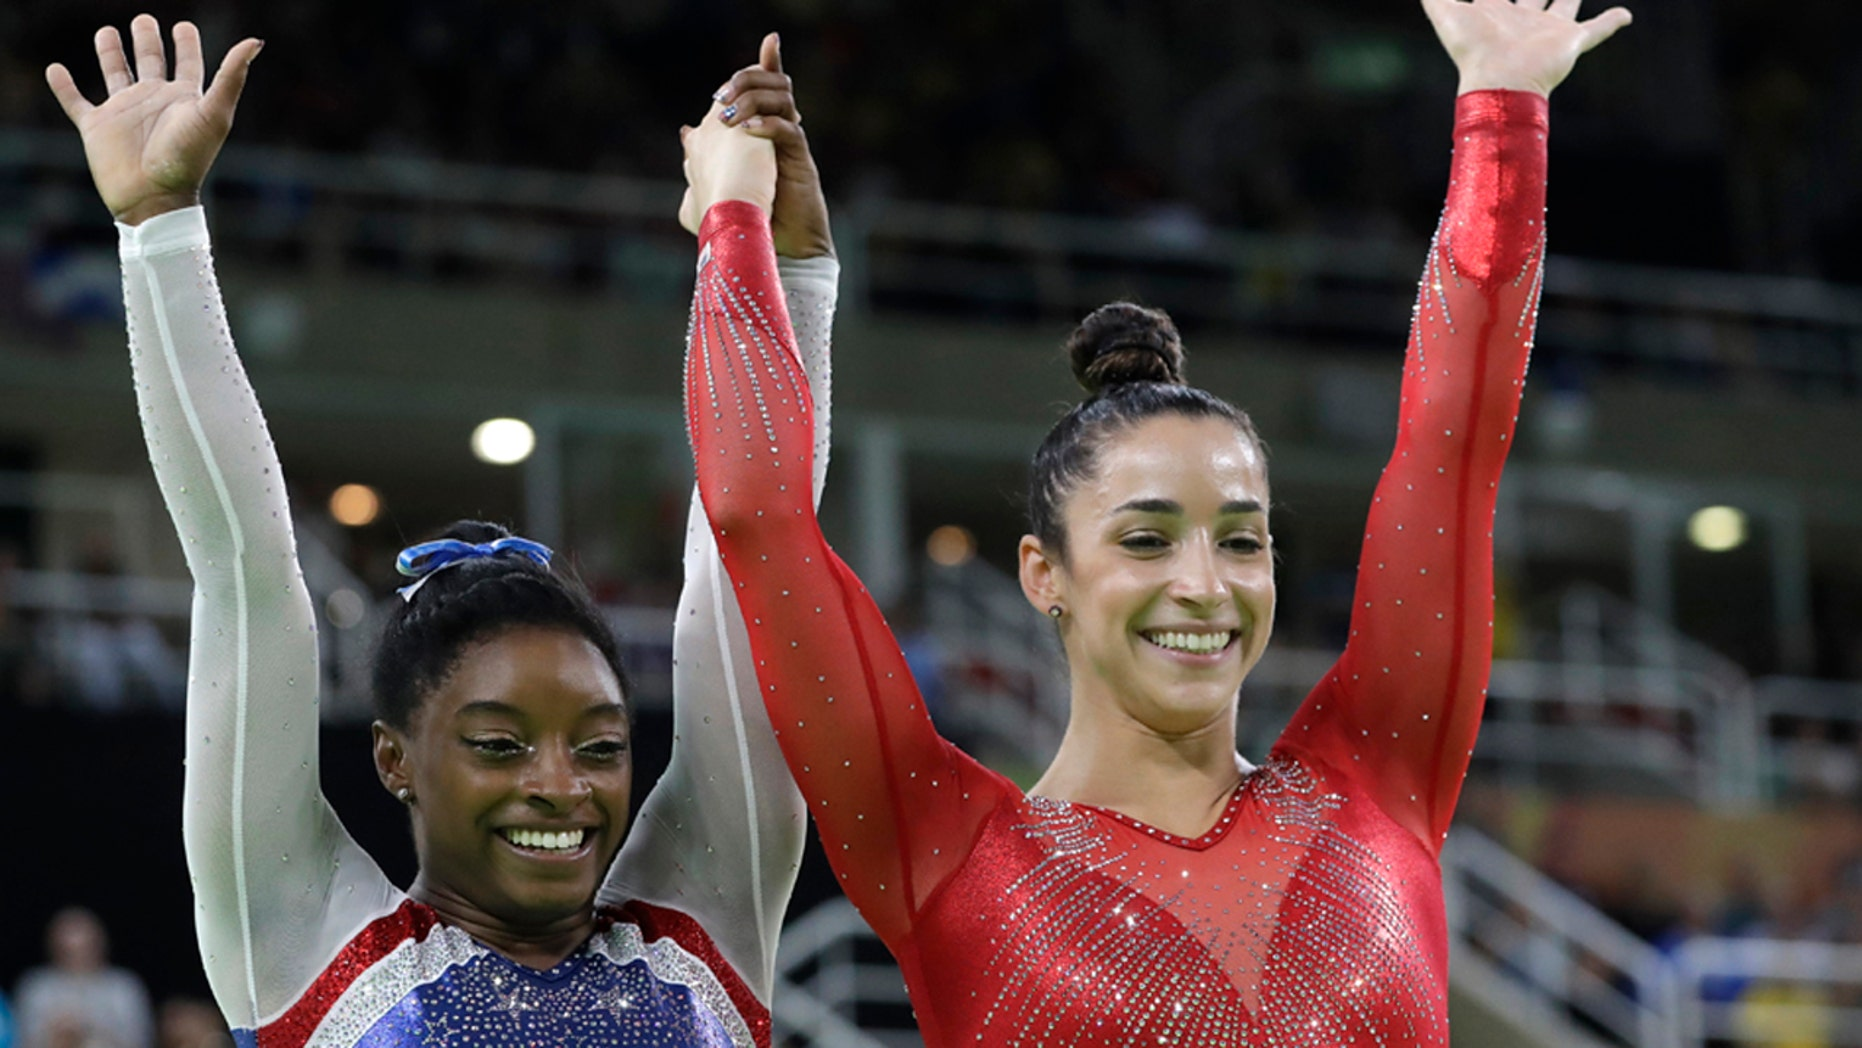 Aug. 11, 2016: United States' Simone Biles, left, and Aly Raisman celebrate after winning gold and silver respectively for the artistic gymnastics women's individual all-around final at the 2016 Summer Olympics in Rio de Janeiro, Brazil.